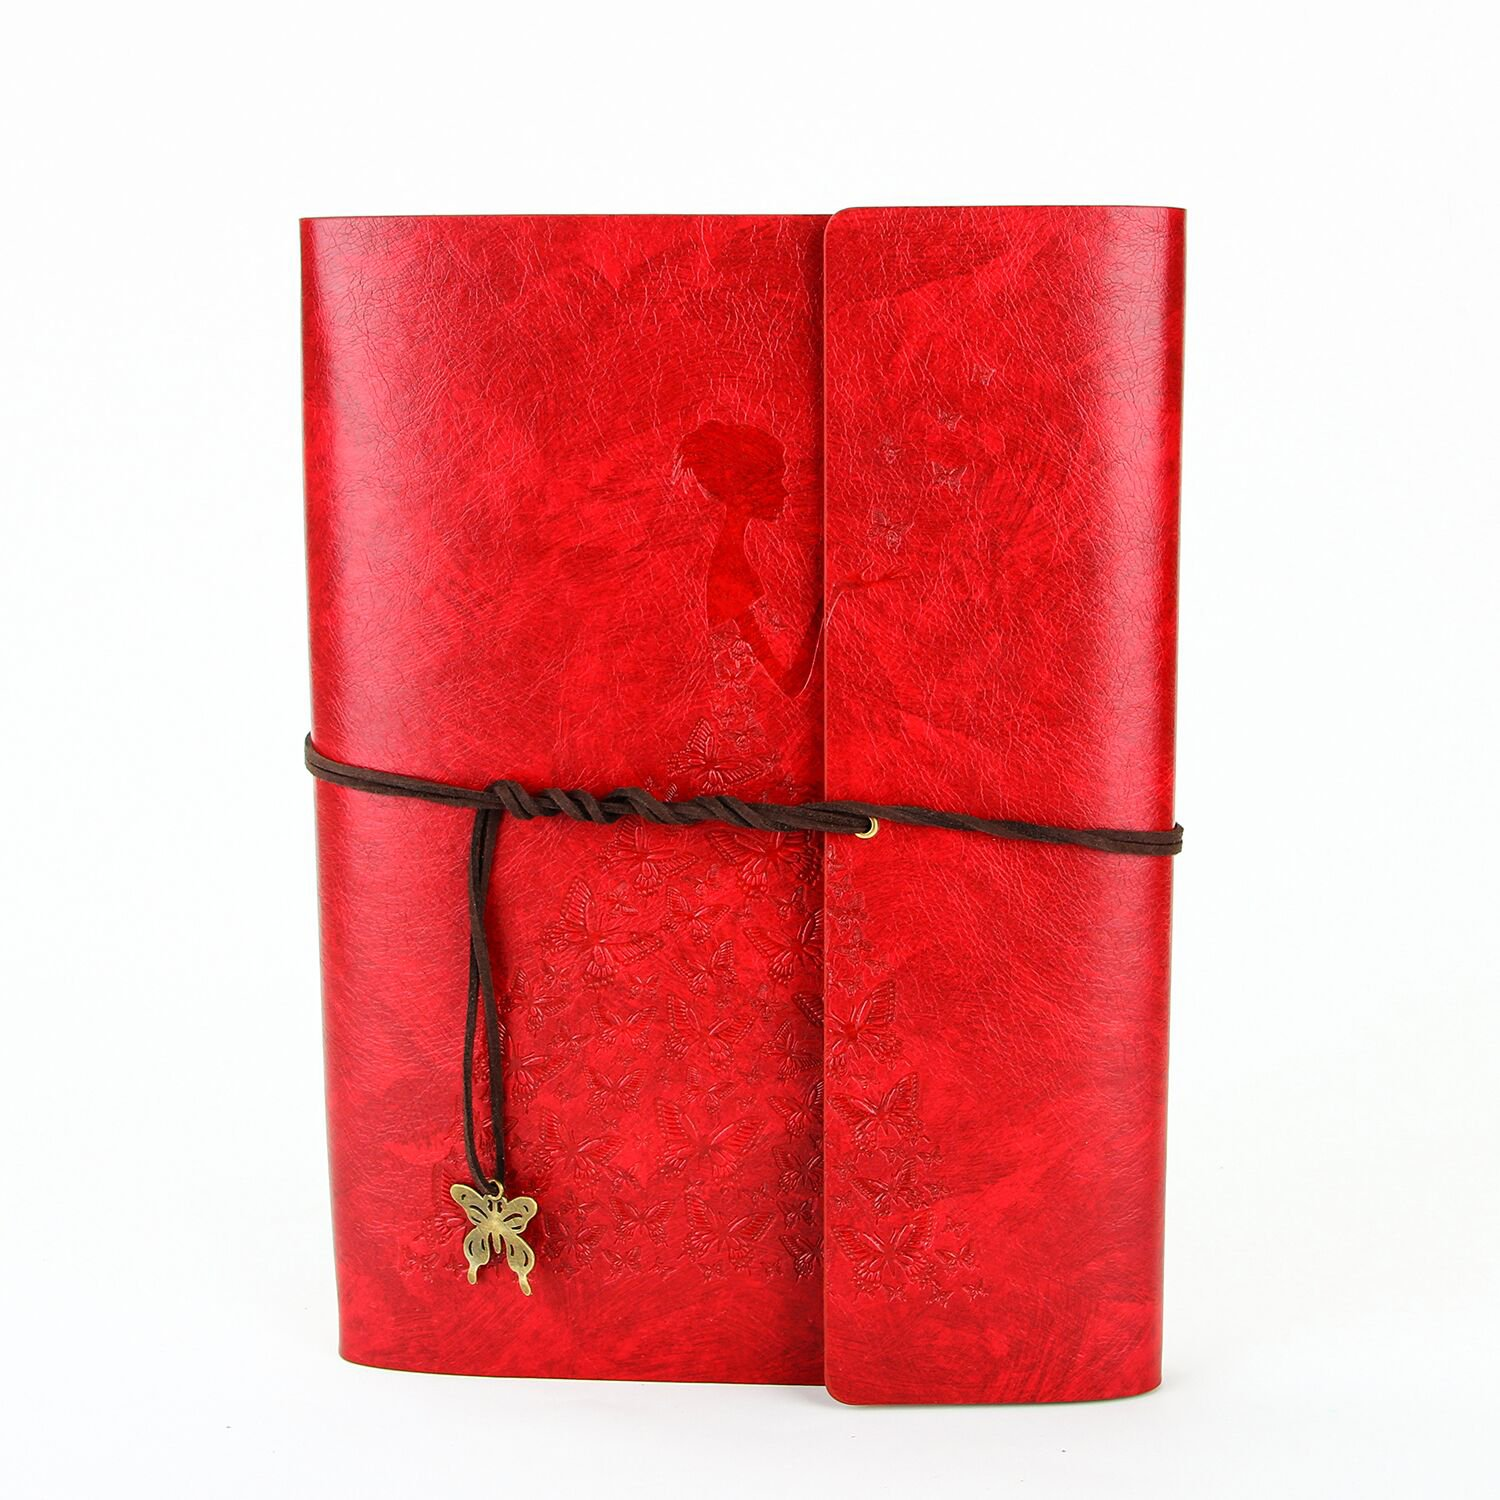 XIUJUAN Scrapbook with Gift Box and Scrapbooking Supplies,Butterfly Girl Black Pages Photo Album Memory Book, Christmas Valentines Birthday Wedding Anniversary Present for Women Her Mom, Red, S DeWei